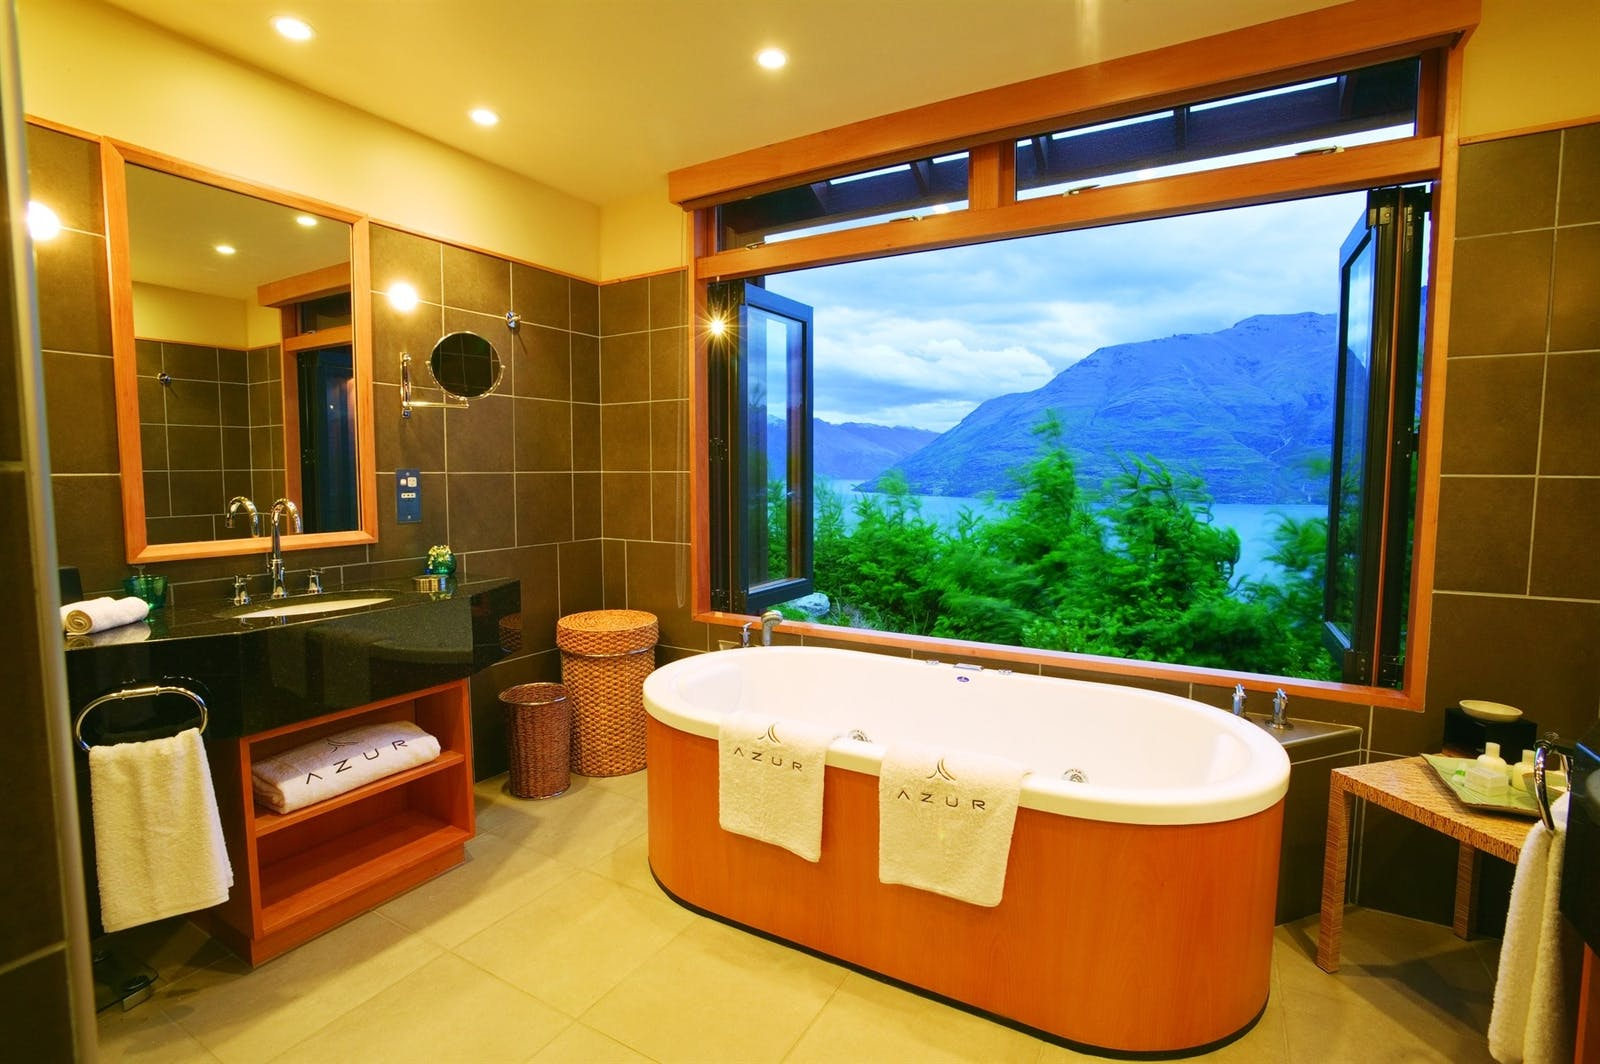 bathroom with a view at azur lodge, Queenstown, South Island, New Zealand